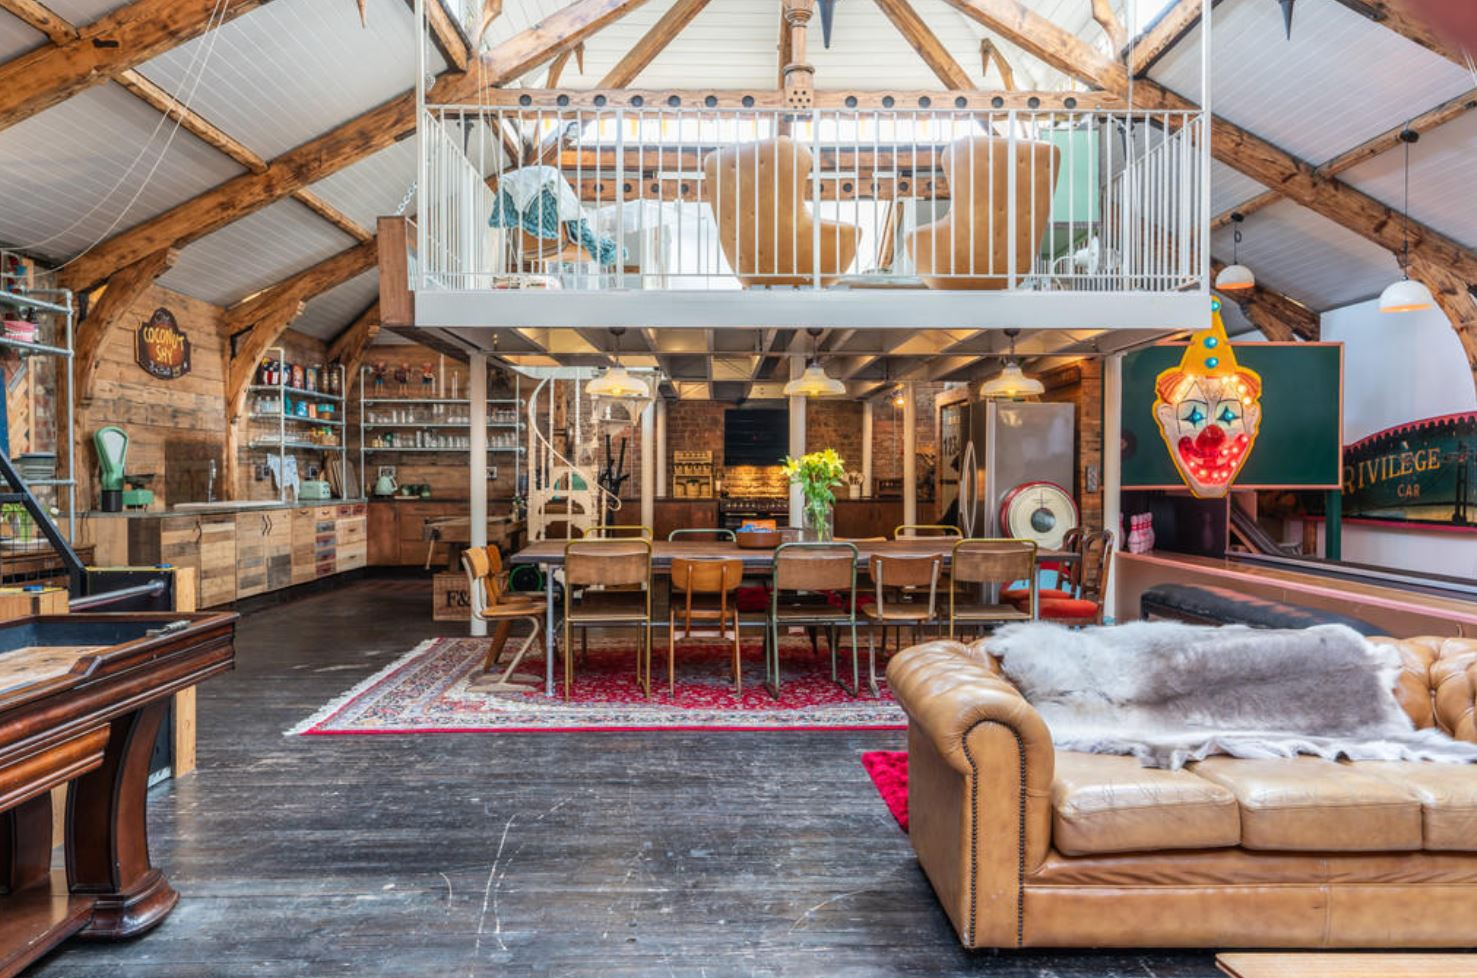 Run away to the circus with this carnival house for sale